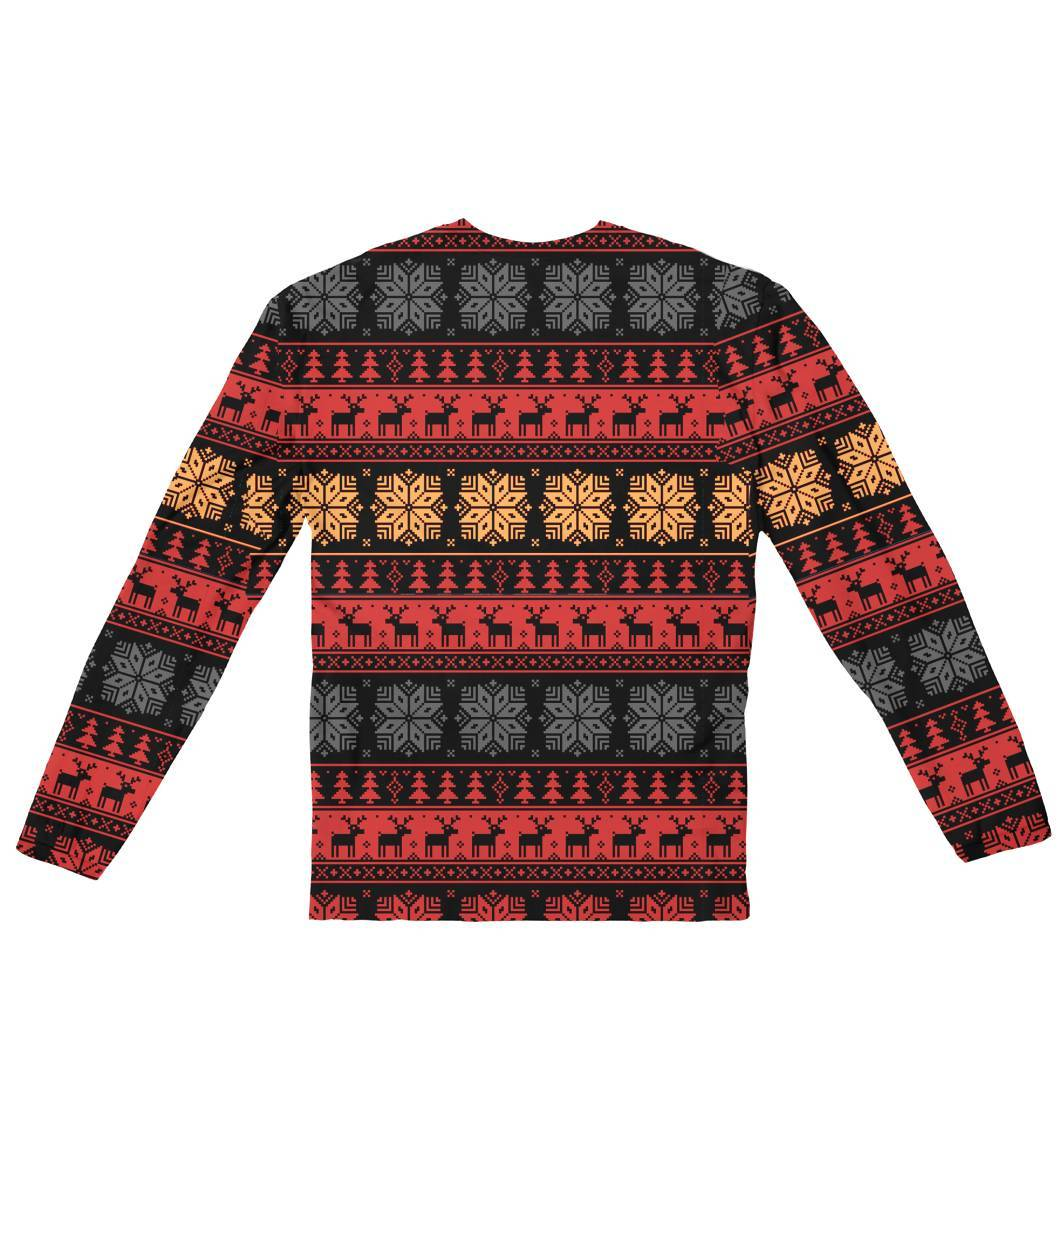 Basset Hound Ugly Sweater - ONLINEPRESALES